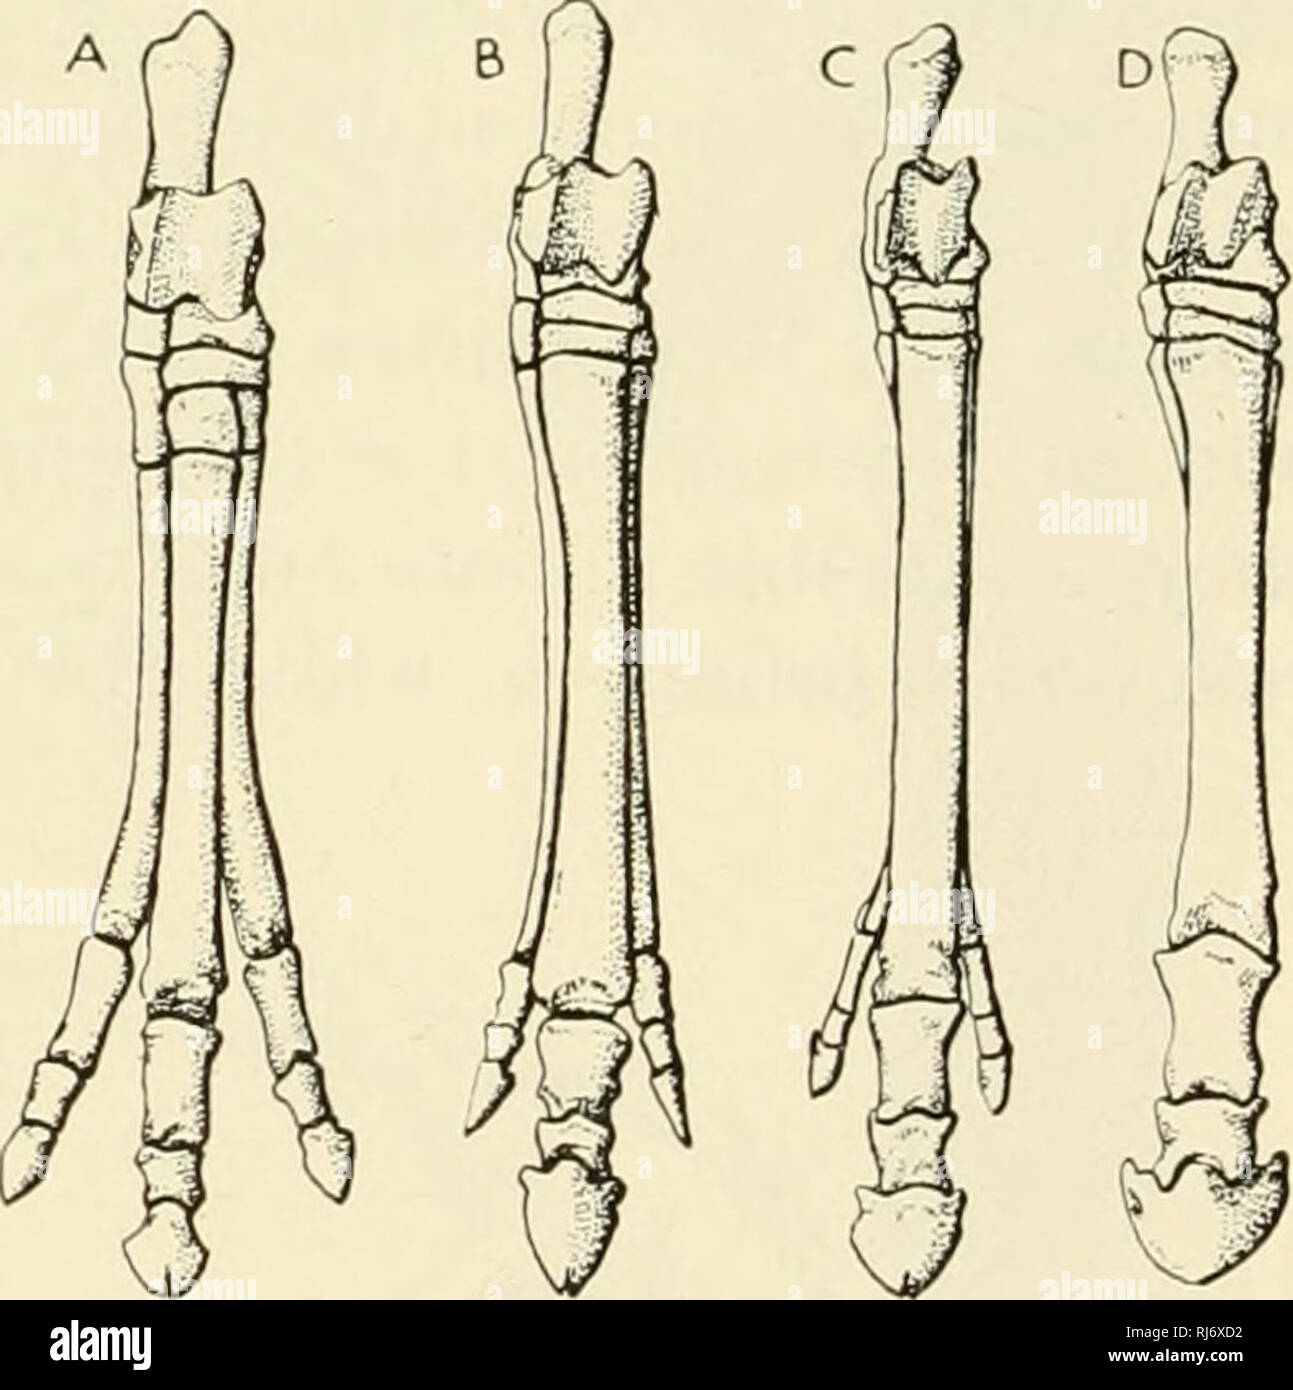 ". The chordates. Chordata. Fig. 598. Feet of horses. (Left) Manns. (Right) Pes. (A) Eohippus, a primitive Lower Eocene perissodactyl with four toes in front and three behind. (B) Mio- hippus, an Oligocene three-toed horse. (C) Merychippus, a late Miocene form with reduced lateral toes. (D) Equus. (A, after Cope; B, C, after Osborn. Courtesy. Romer: ""Vertebrate Paleontology,"" University of Chicago Press.). Please note that these images are extracted from scanned page images that may have been digitally enhanced for readability - coloration and appearance of these illustrations may not - Stock Image"